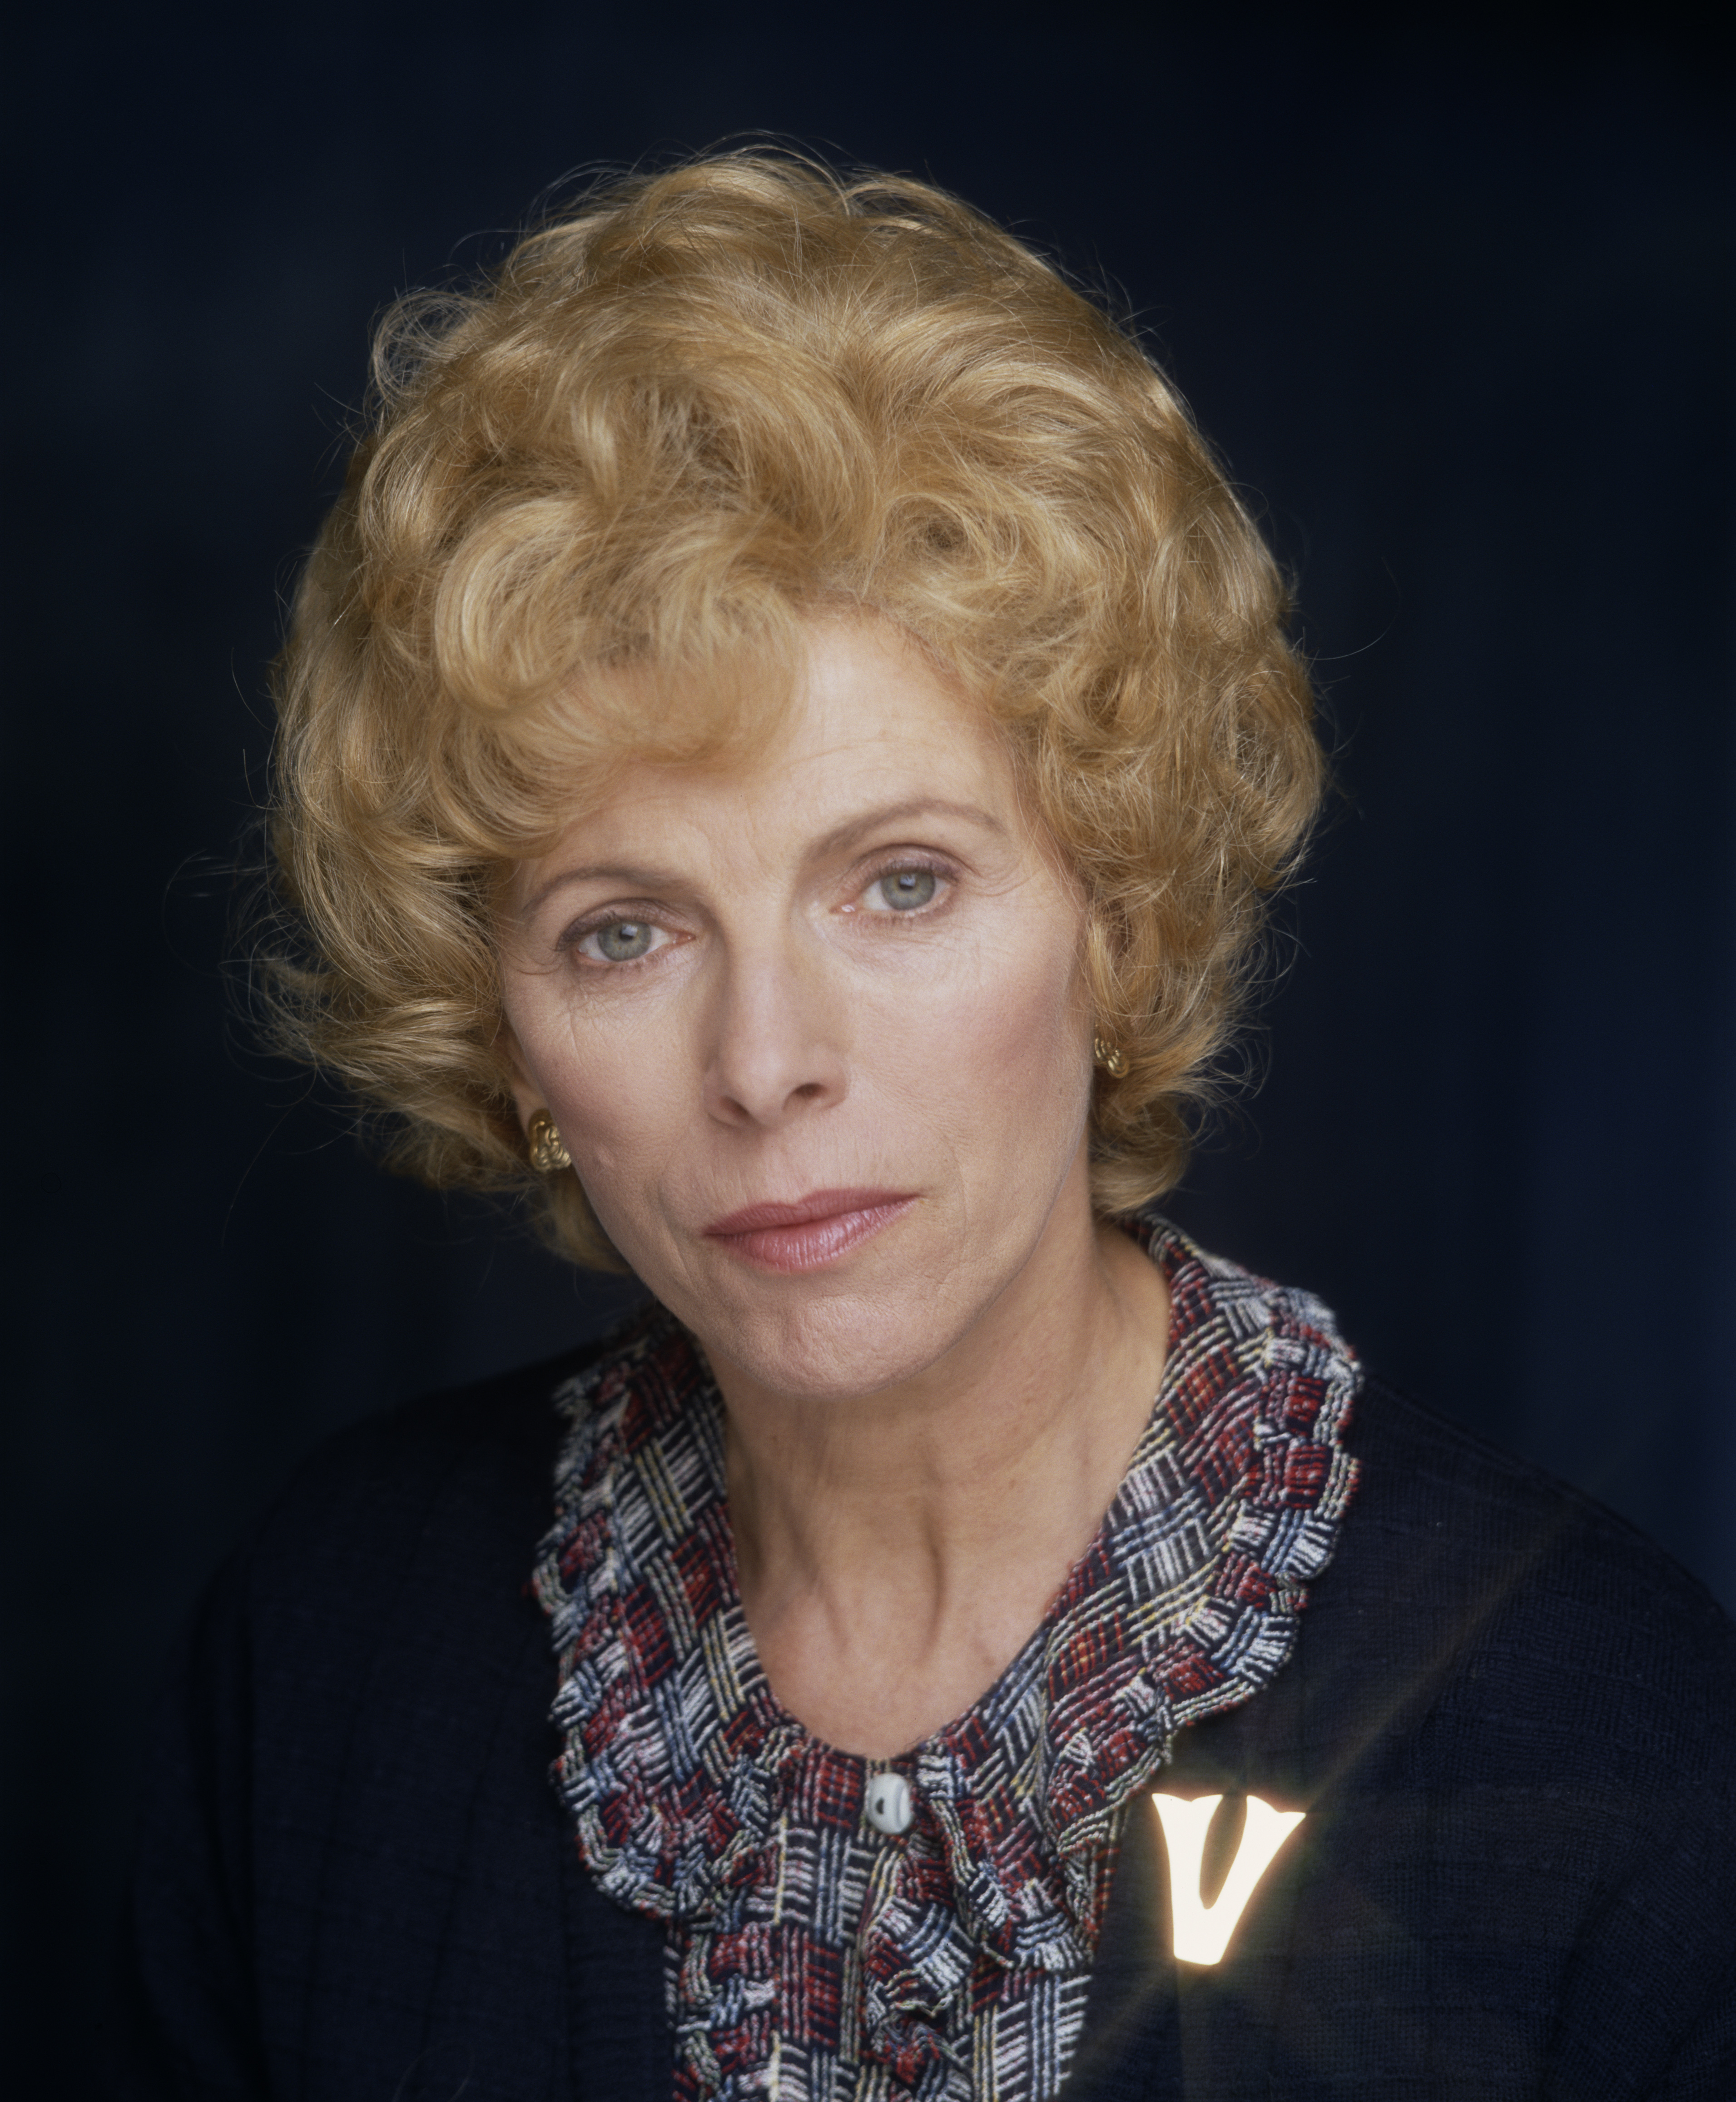 English actress Billie Whitelaw as Violet Kray in the film 'The Krays' in 1990.